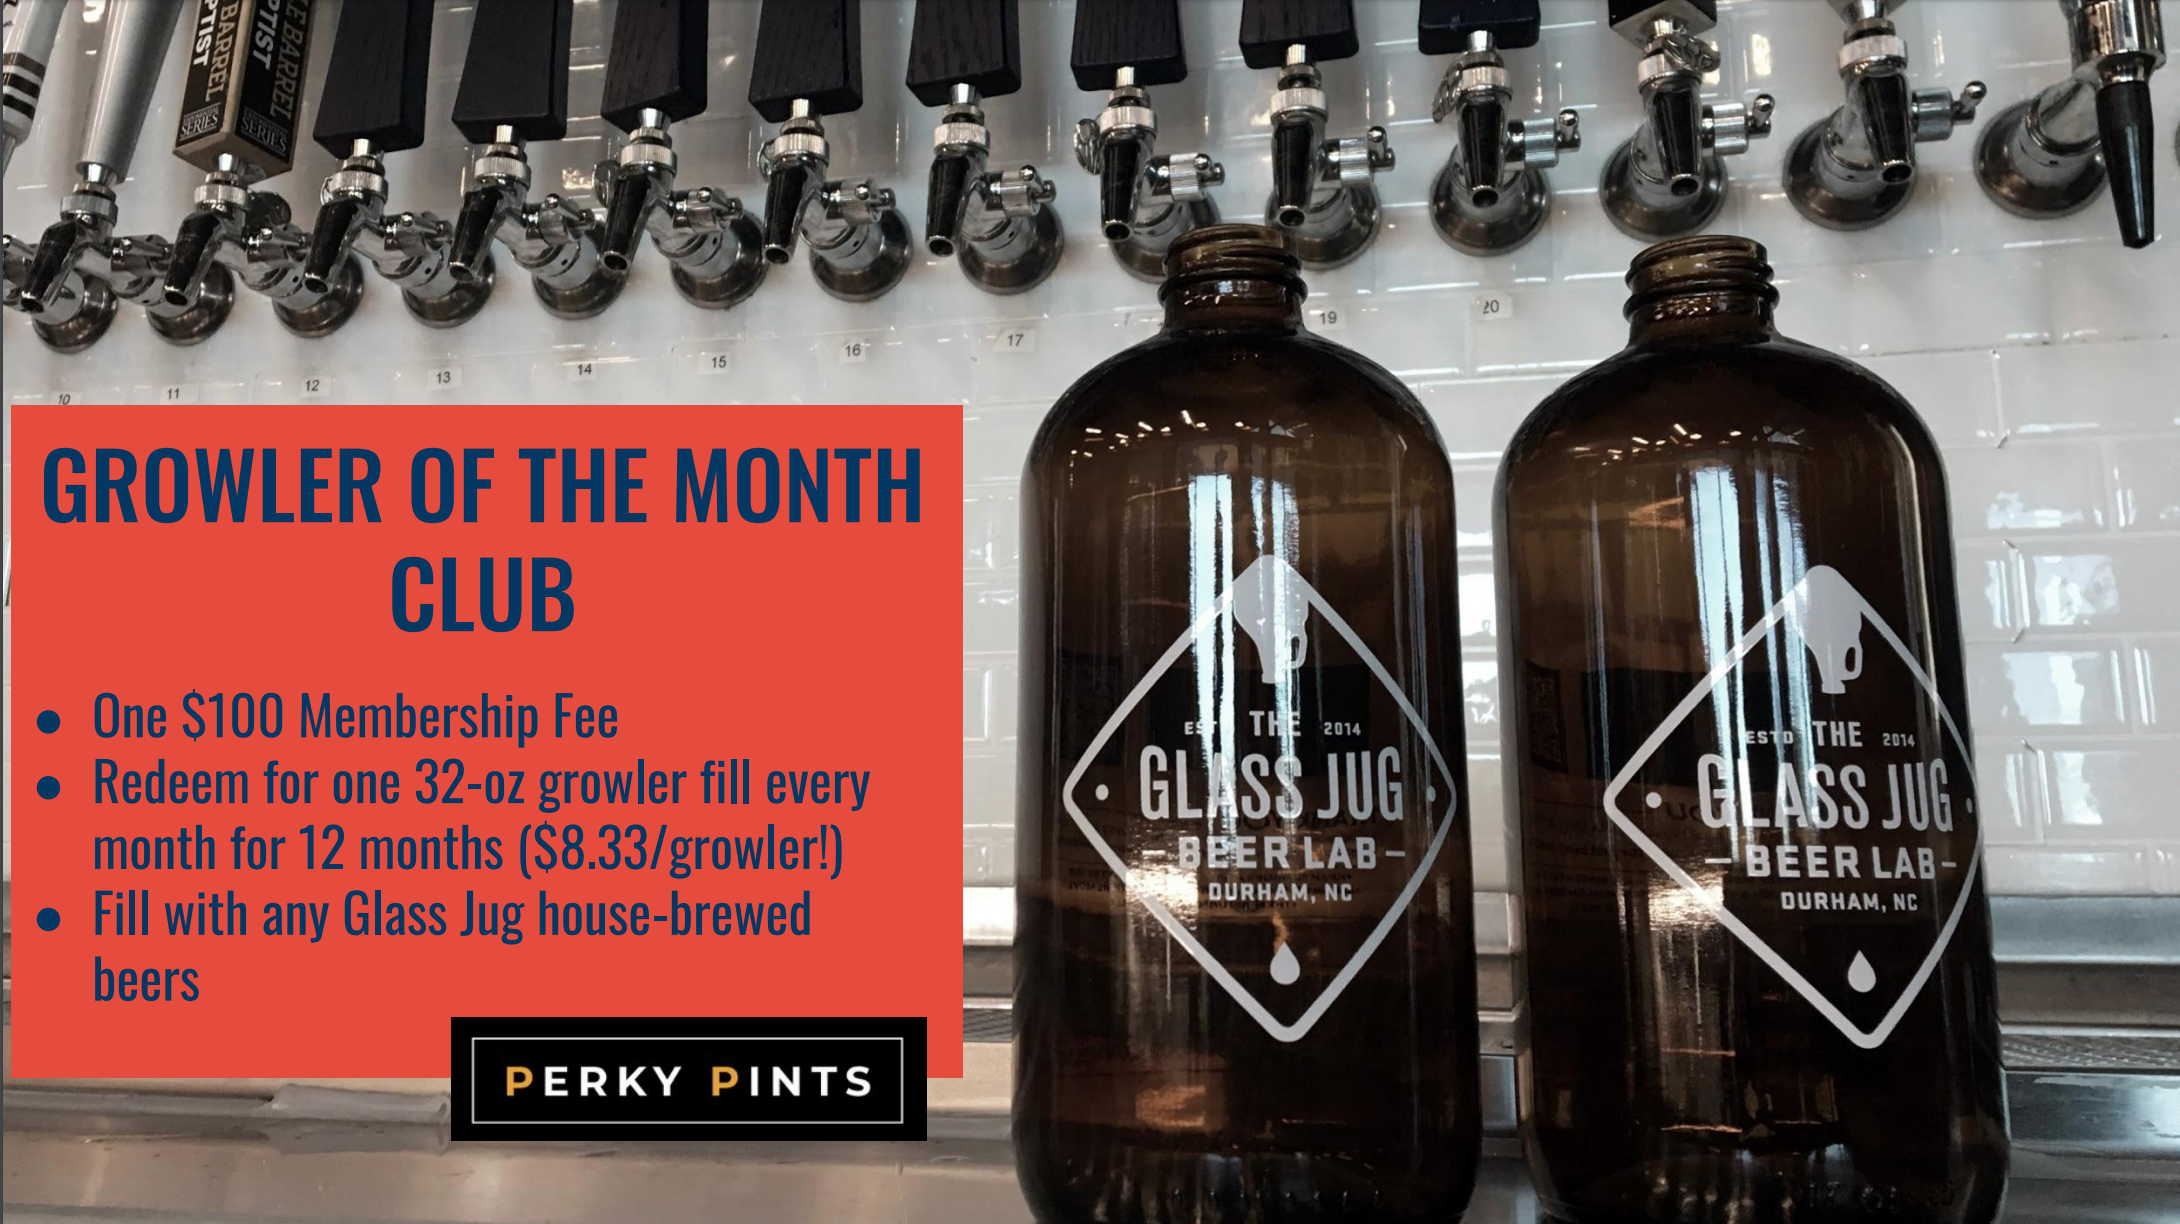 Fill your growler every month! - Join our growler of the month club today and you can fill your 32-ounce growler with any house-made Glass Jug beer every calendar month for 12 months! One payment of $100 gets you 12 fills over the course of 12 months. That's only $8.33 per fill!Deal only applies to Glass Jug beer. Growlers can only be redeemed once per month. No rollover from one month to the next. No substitutions, no exceptions.To join the Growler of the Month club, download the Perky Pints app and subscribe.